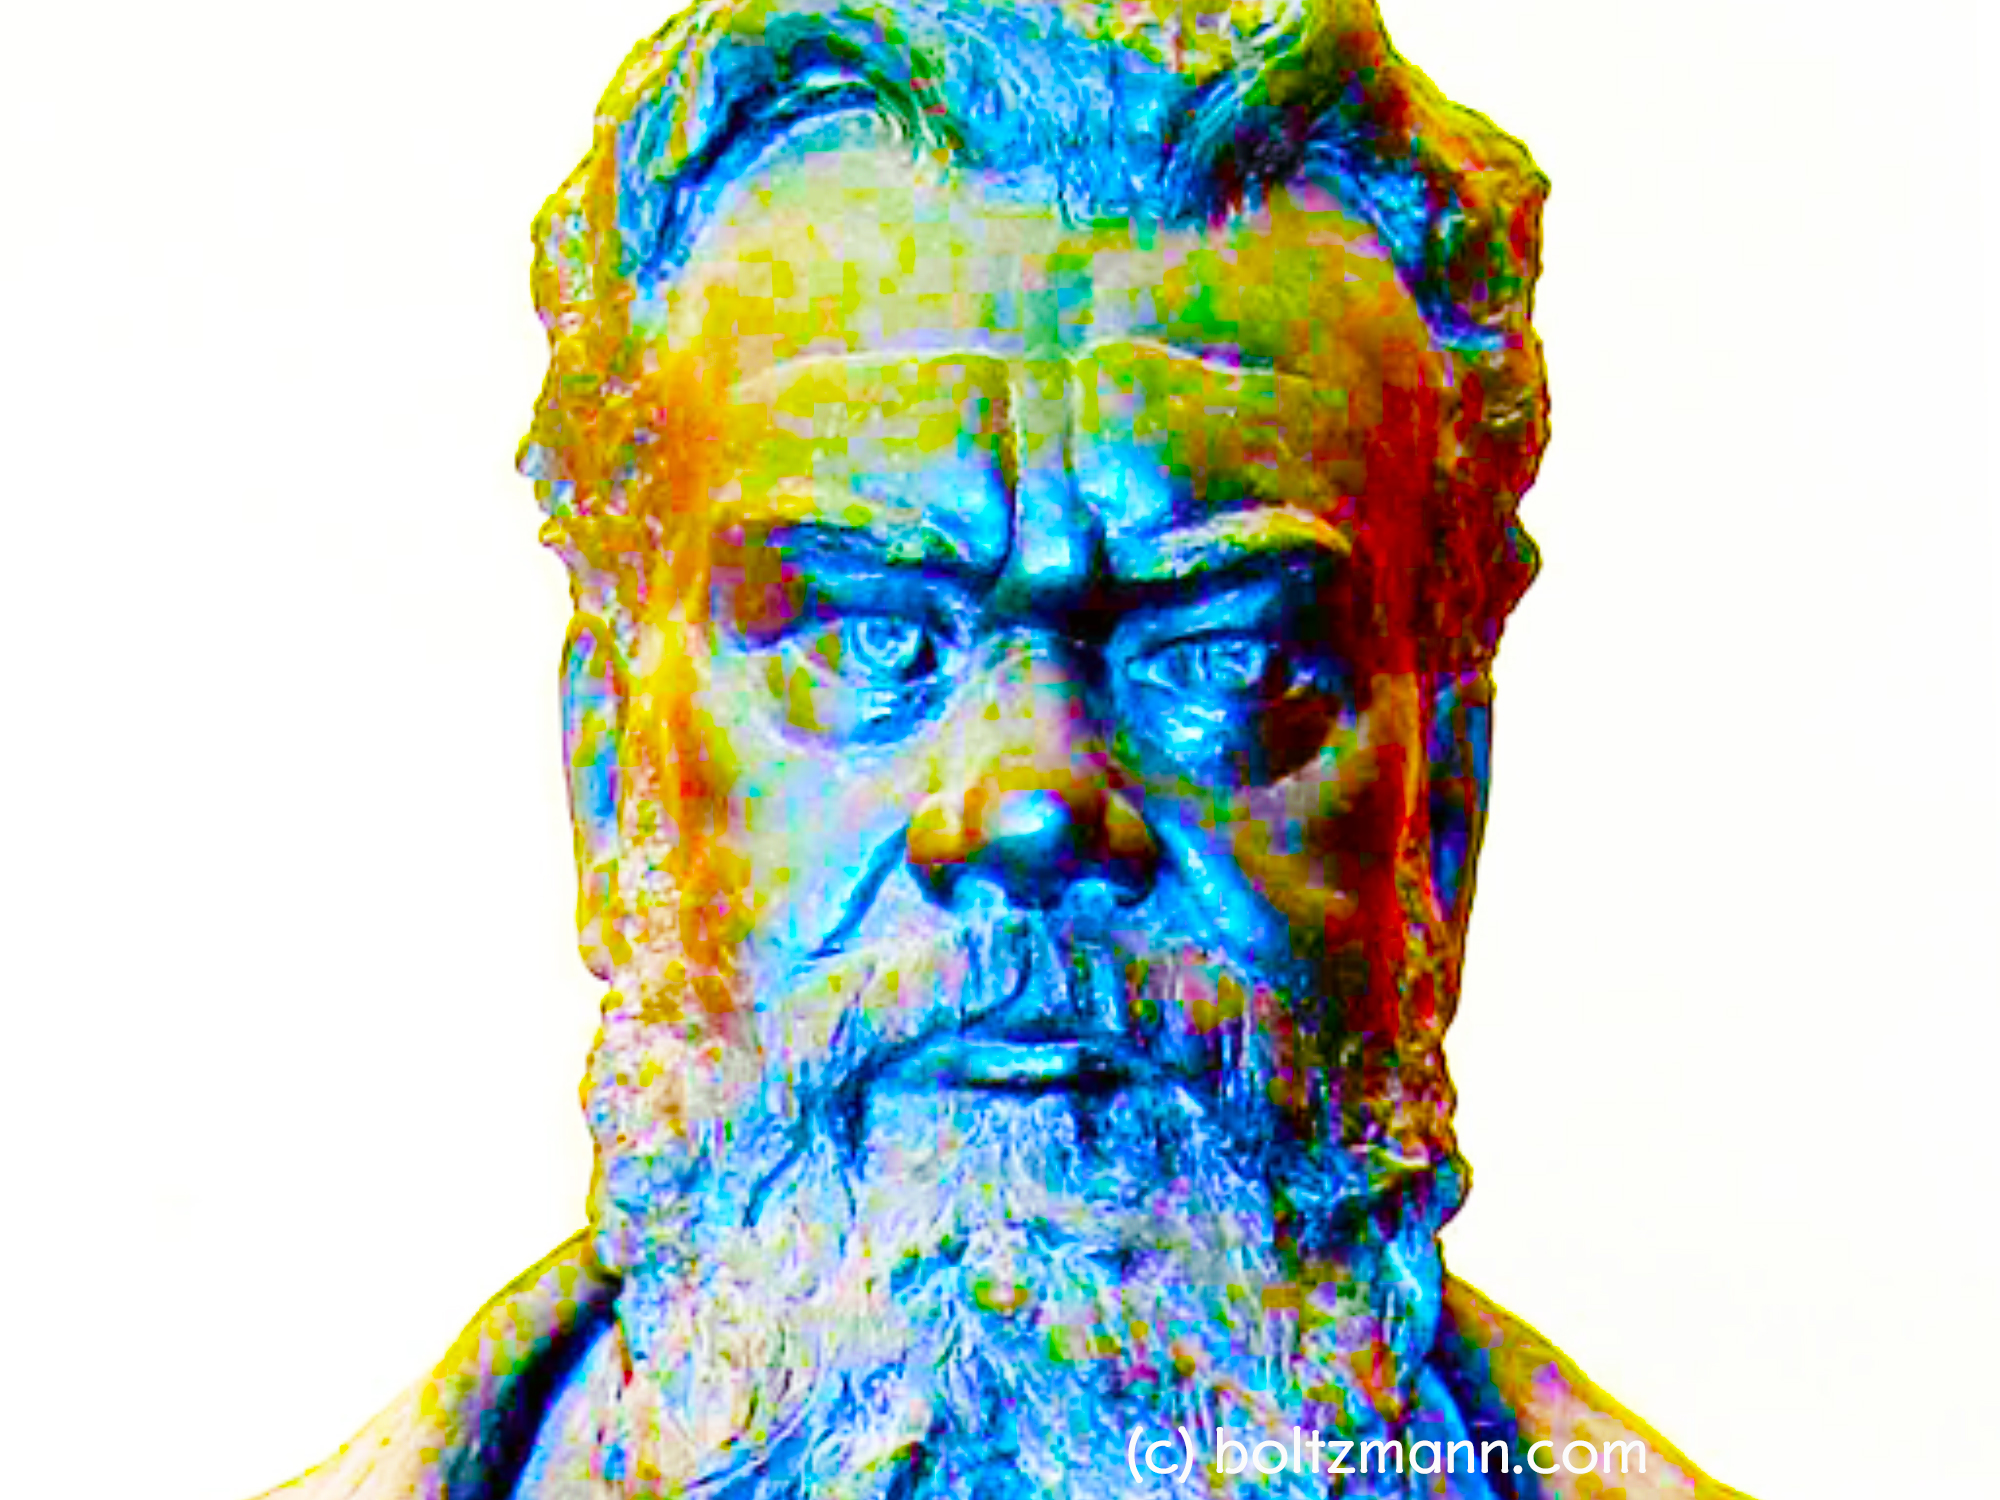 Ludwig Boltzmann 20 February 1844 - 5 September 1906